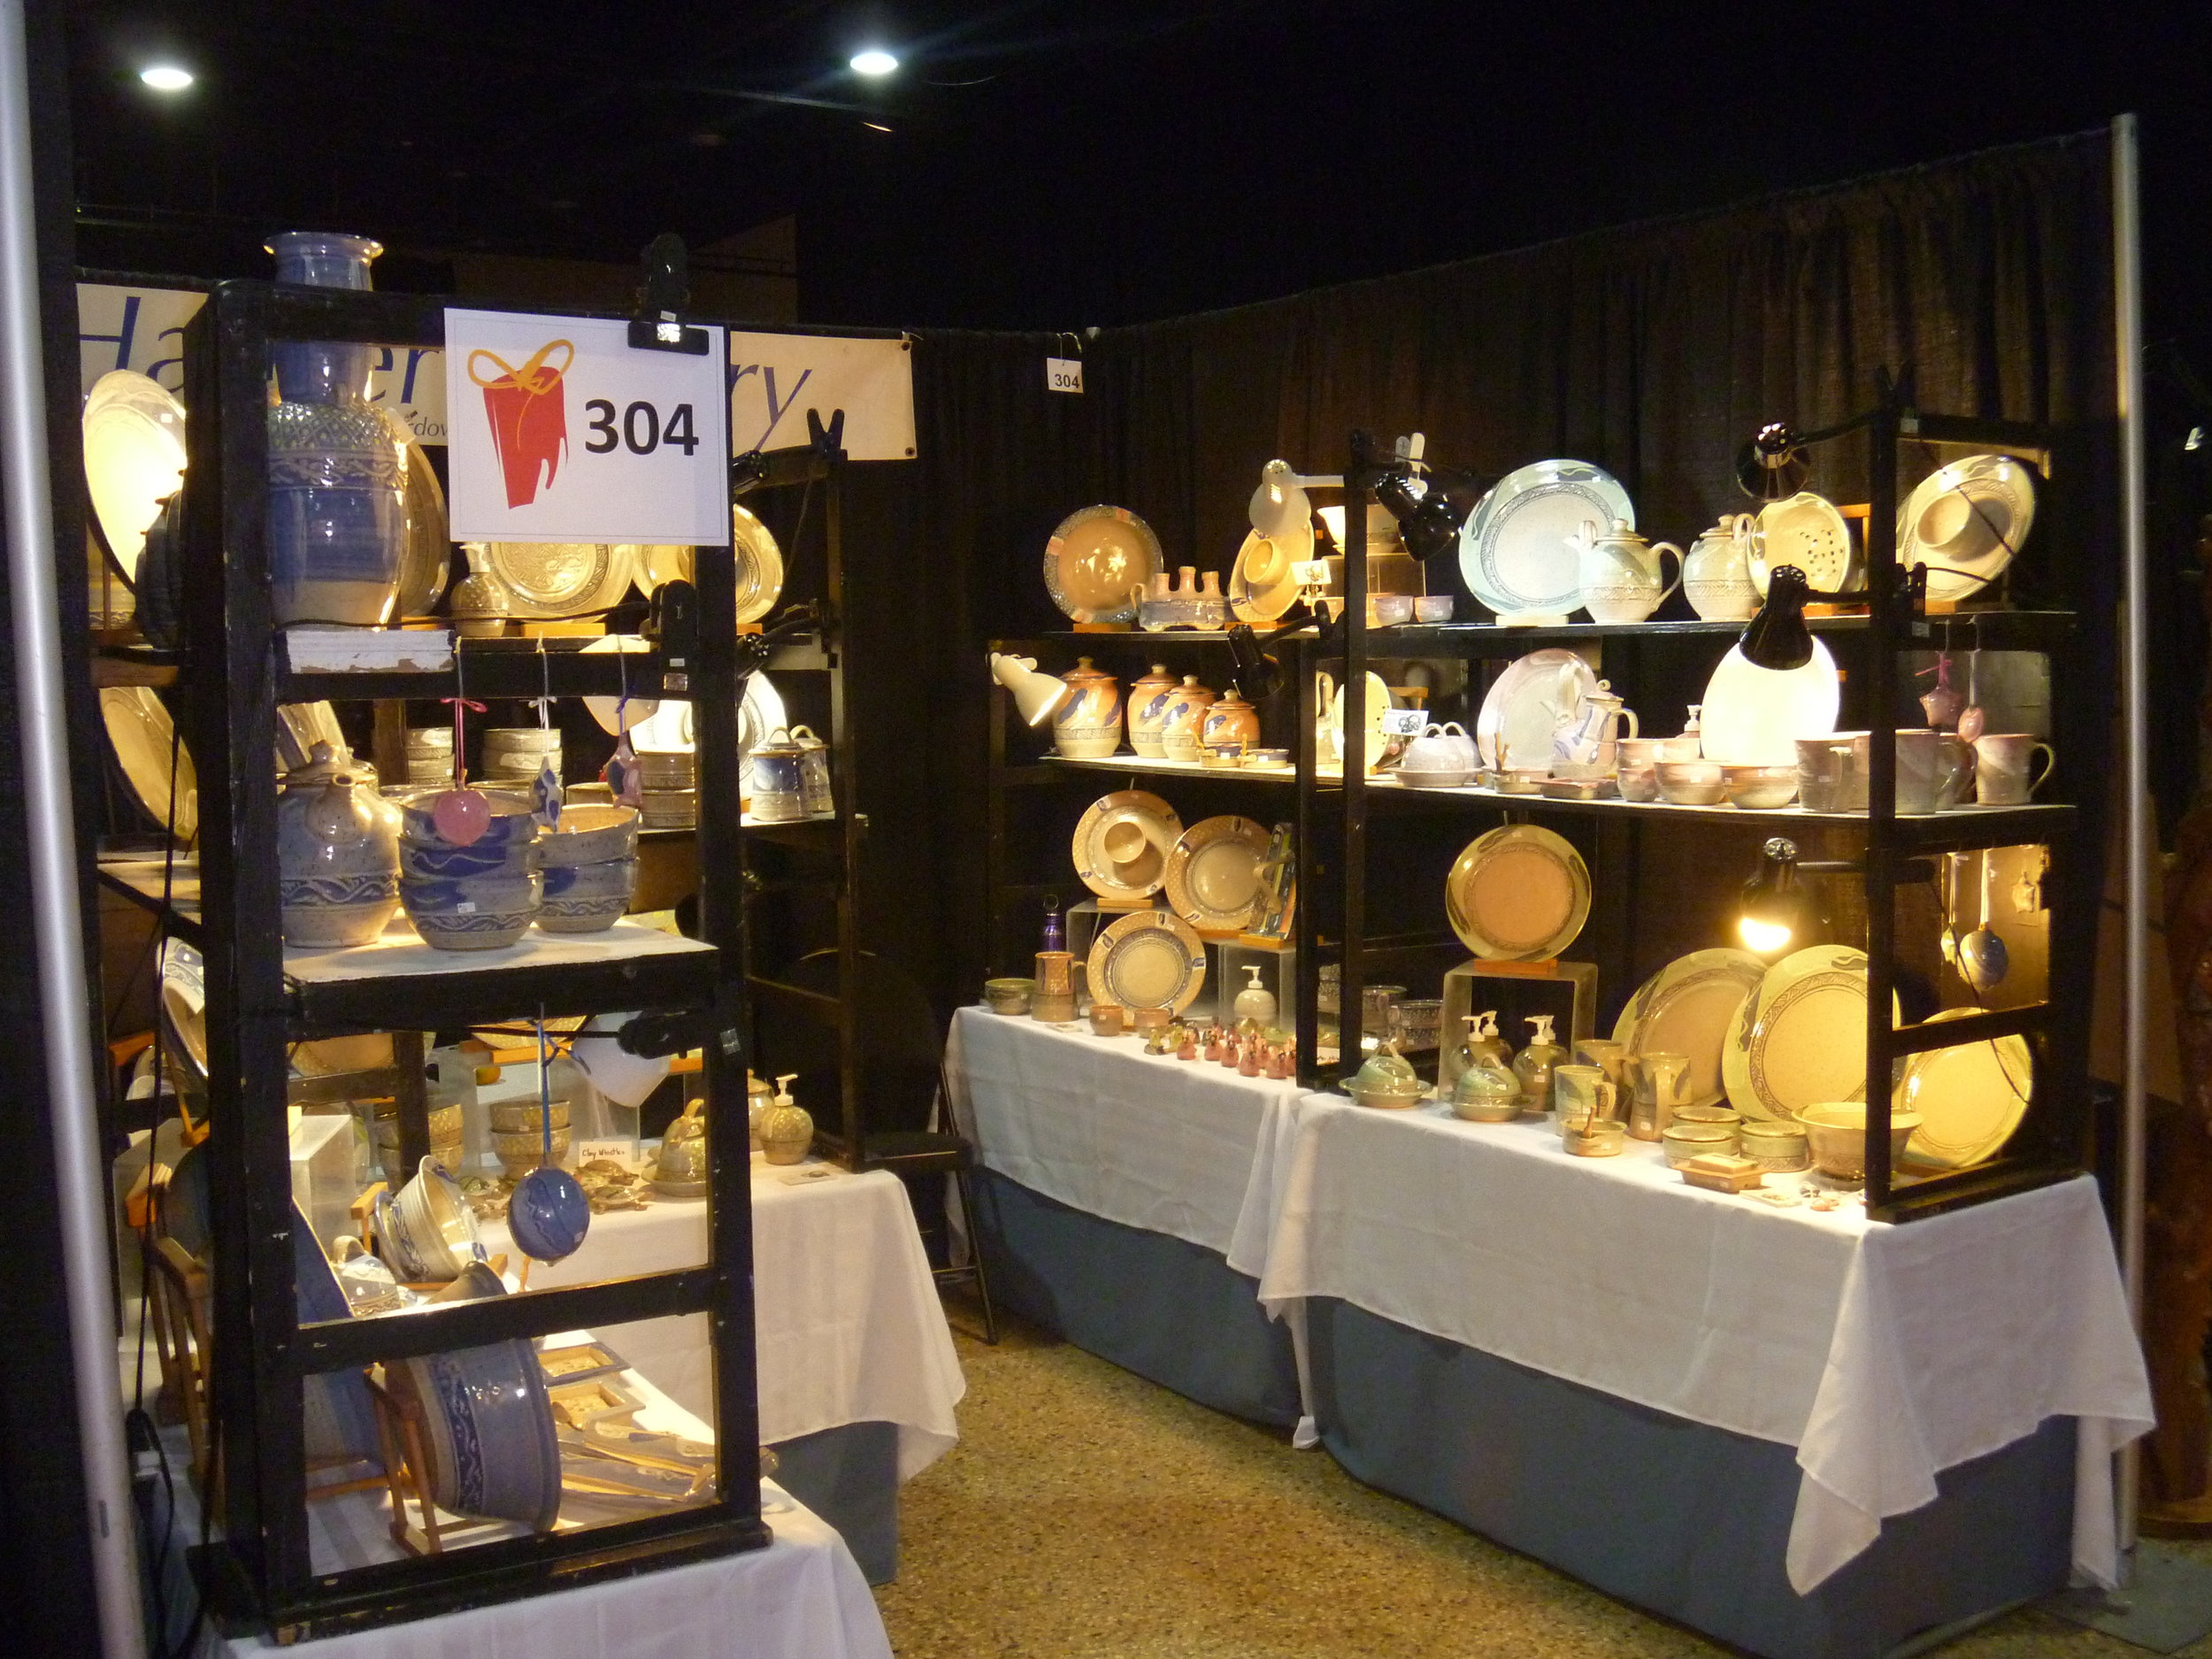 8 Harper pottery Booth Display.JPG